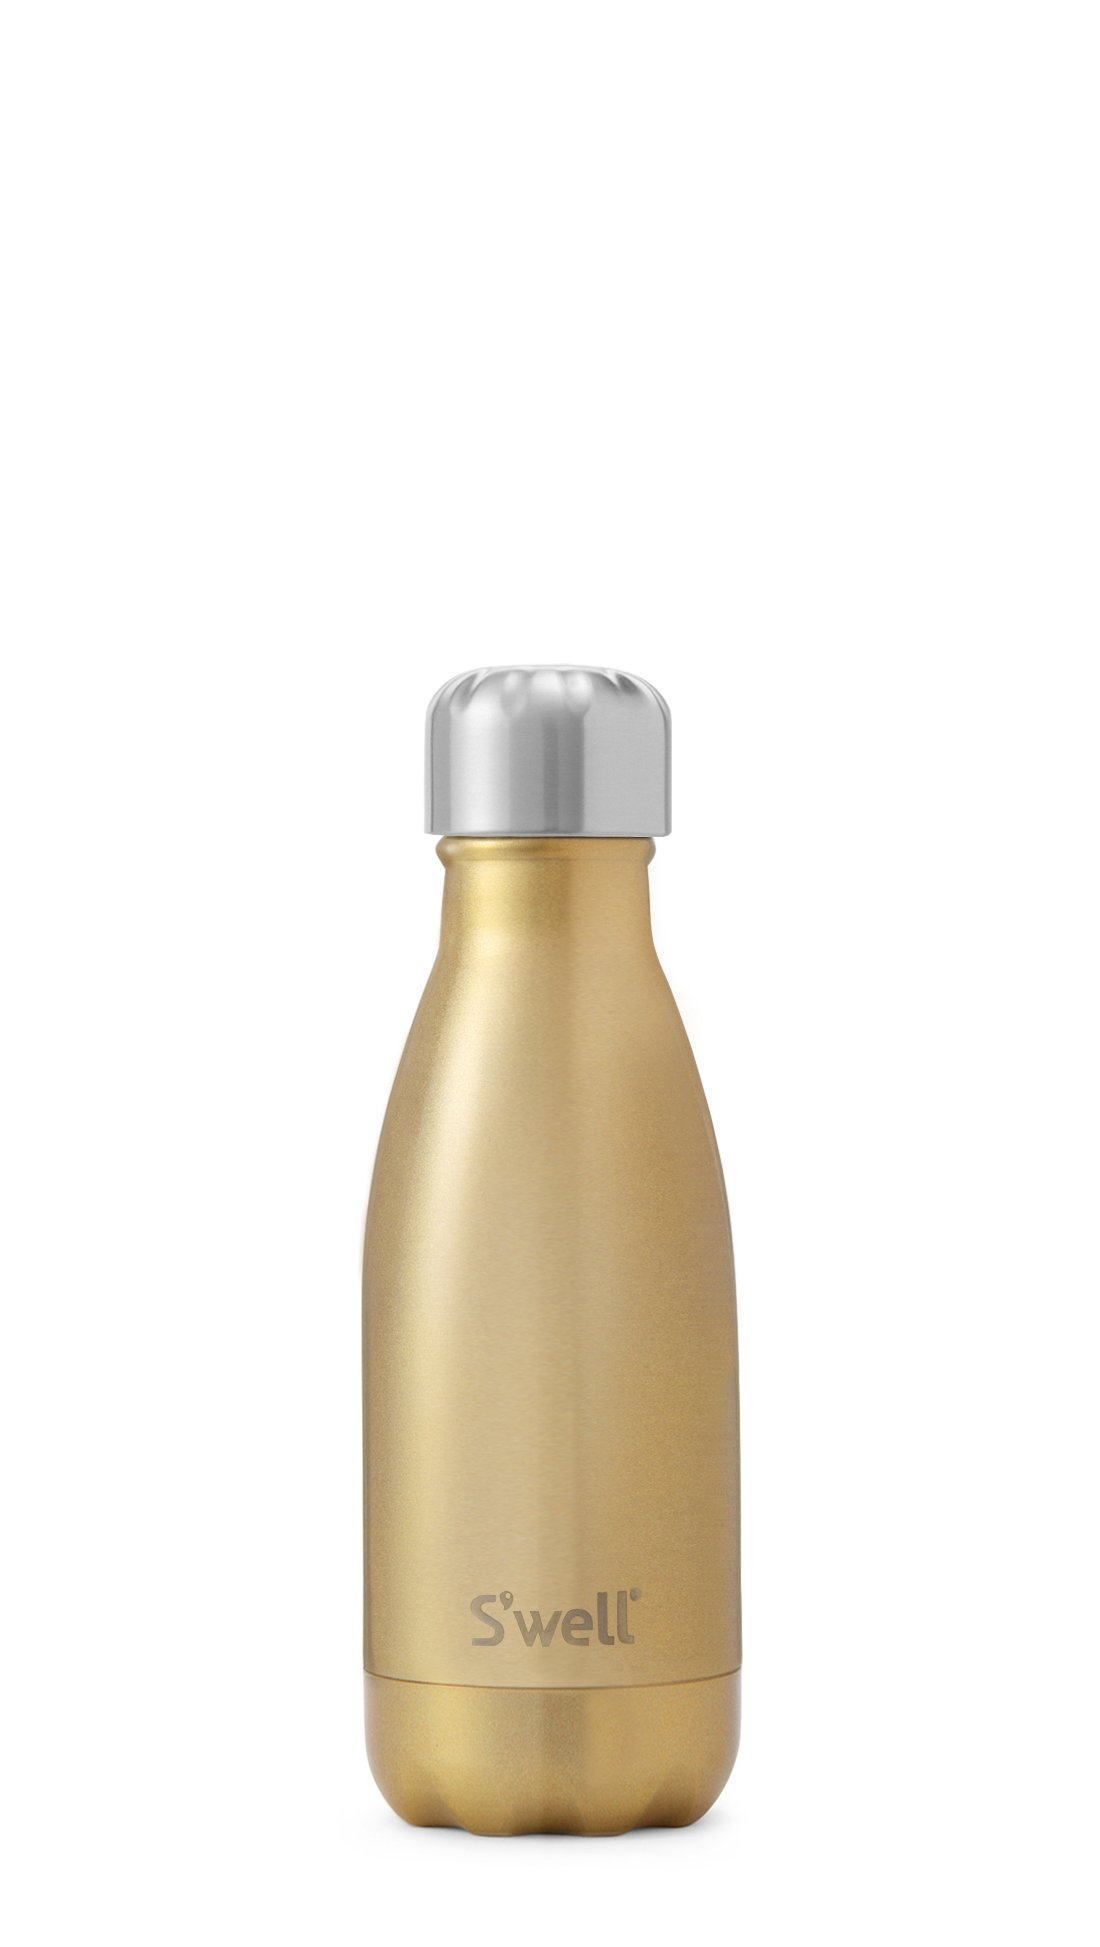 S'well Vacuum Insulated Stainless Steel Water Bottle, 9 oz, Sparkling Champagne